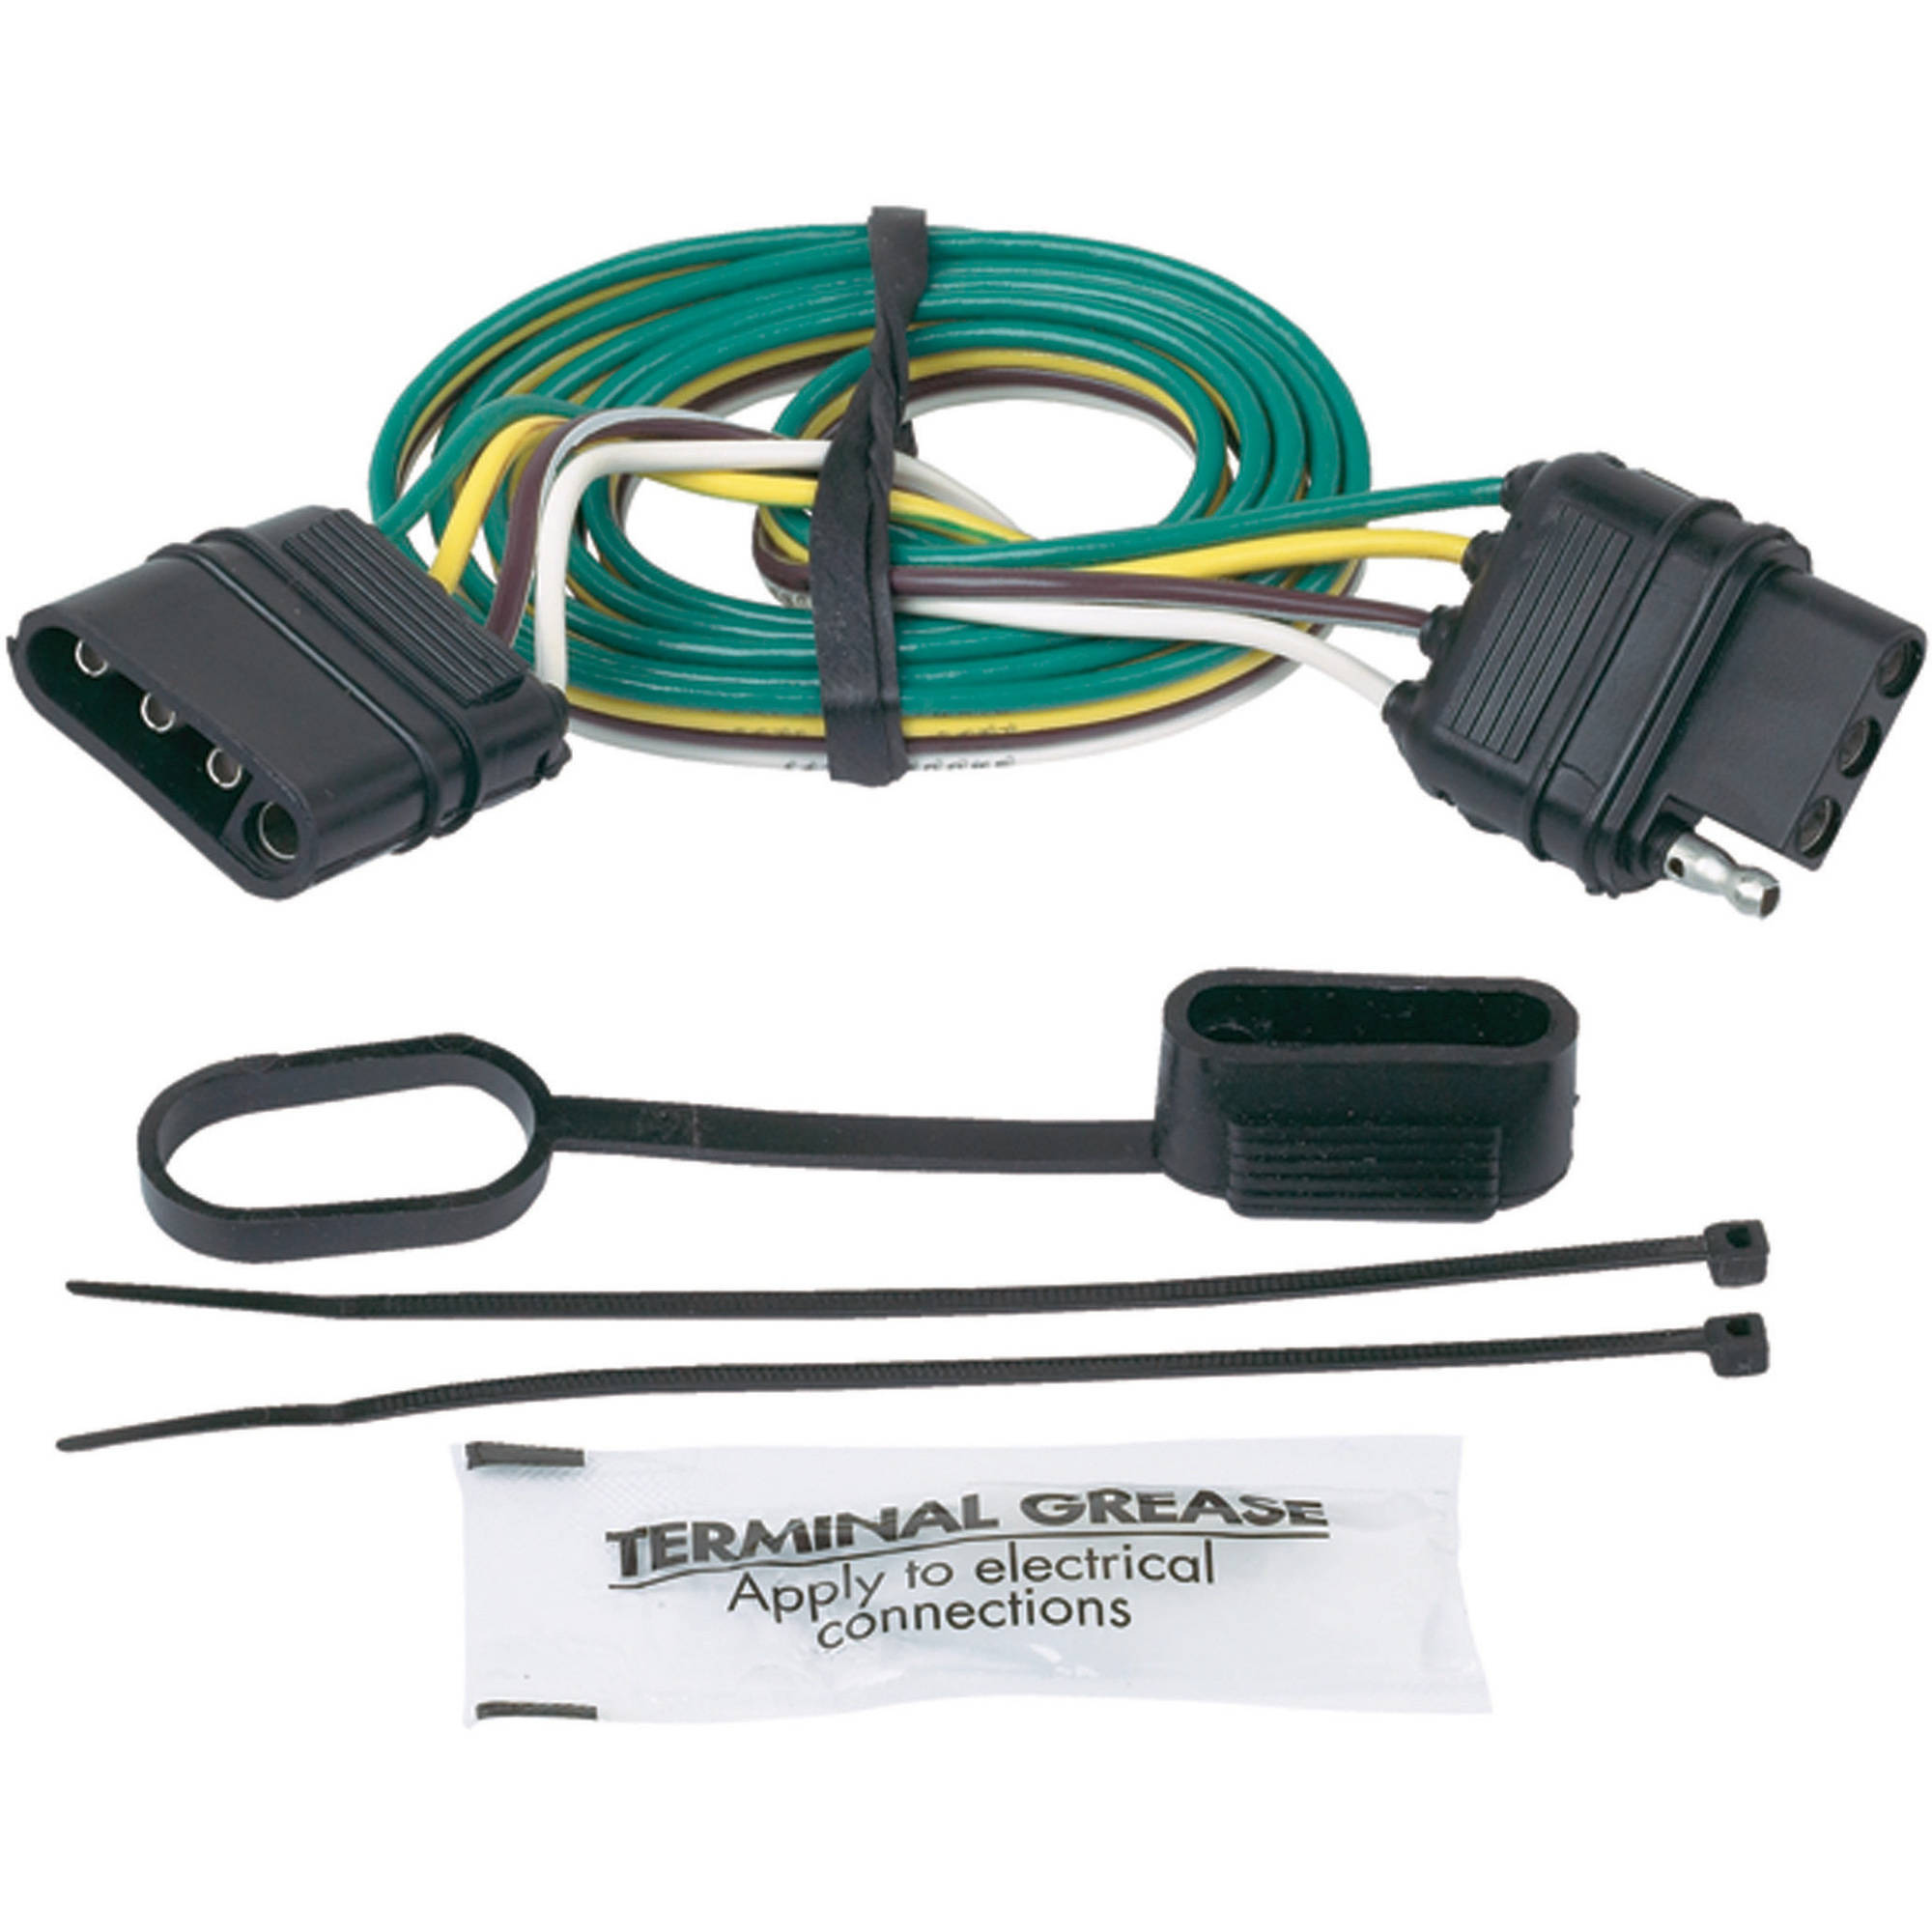 Trailer Wiring Hopkins 40495 Diagram Brake Controller Towing Harnesses And Kits Hitches Rh Walmart Com Harness